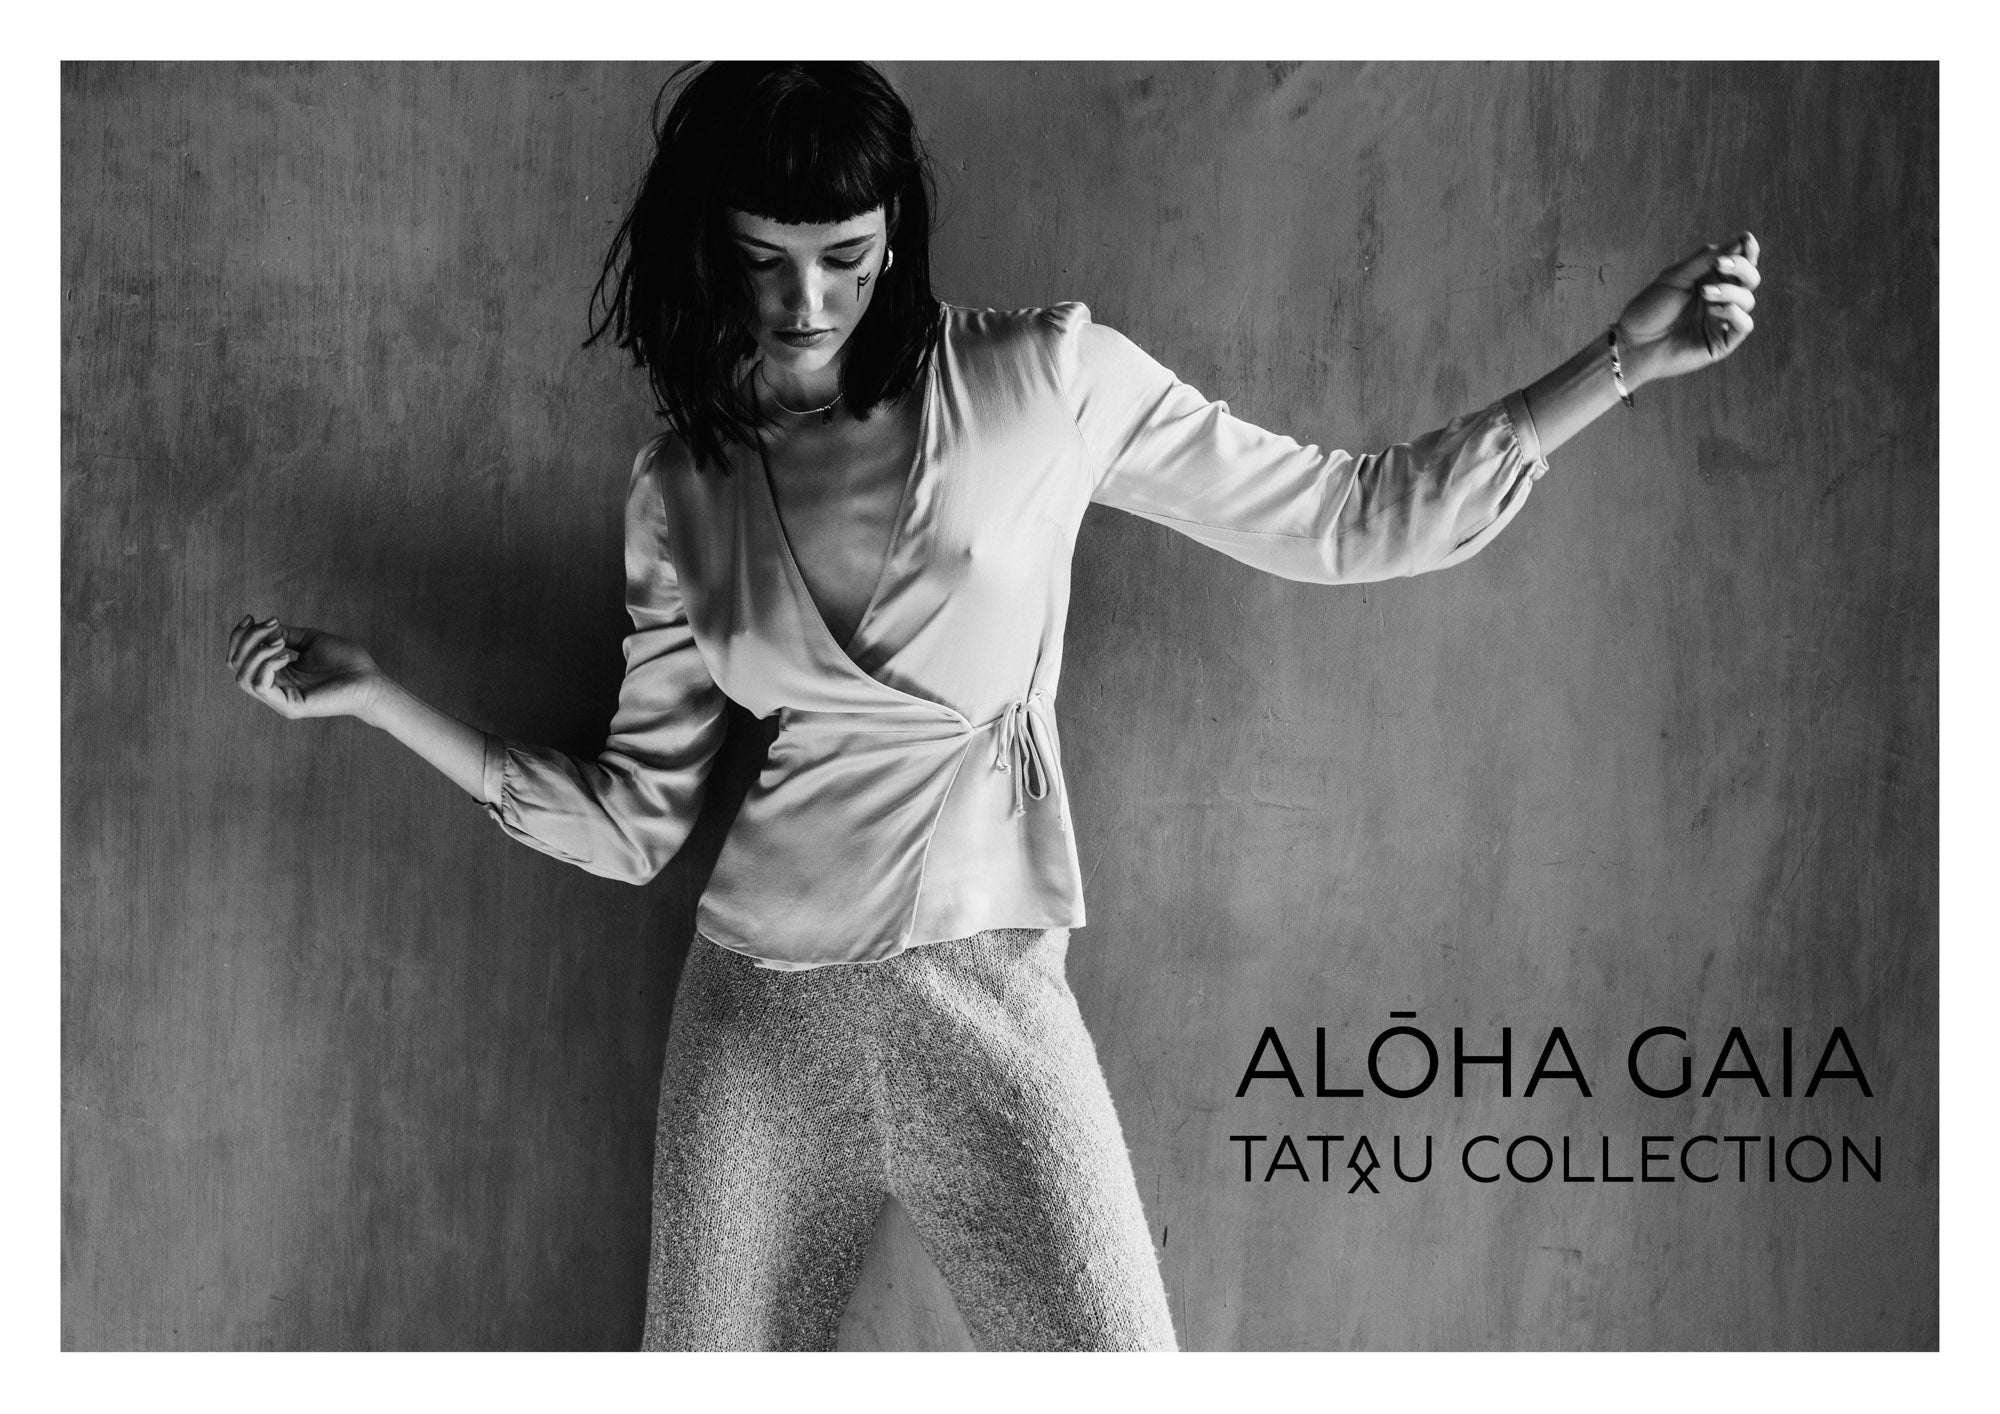 Aloha Gaia - Tatau Collection